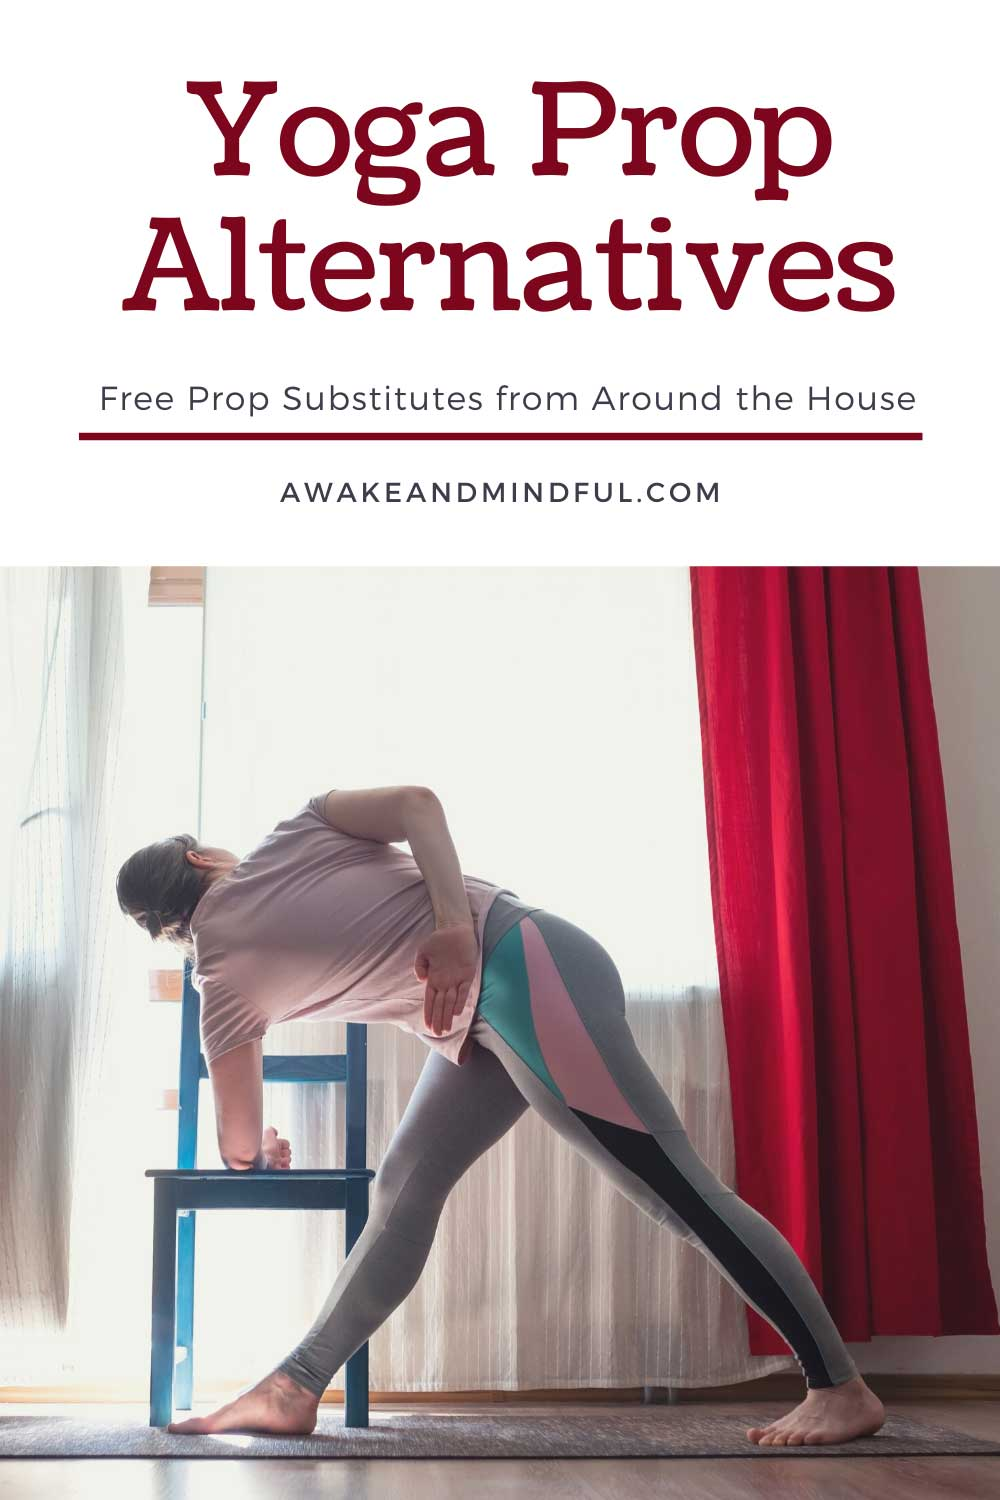 Yoga Prop Alternatives for Home Practice